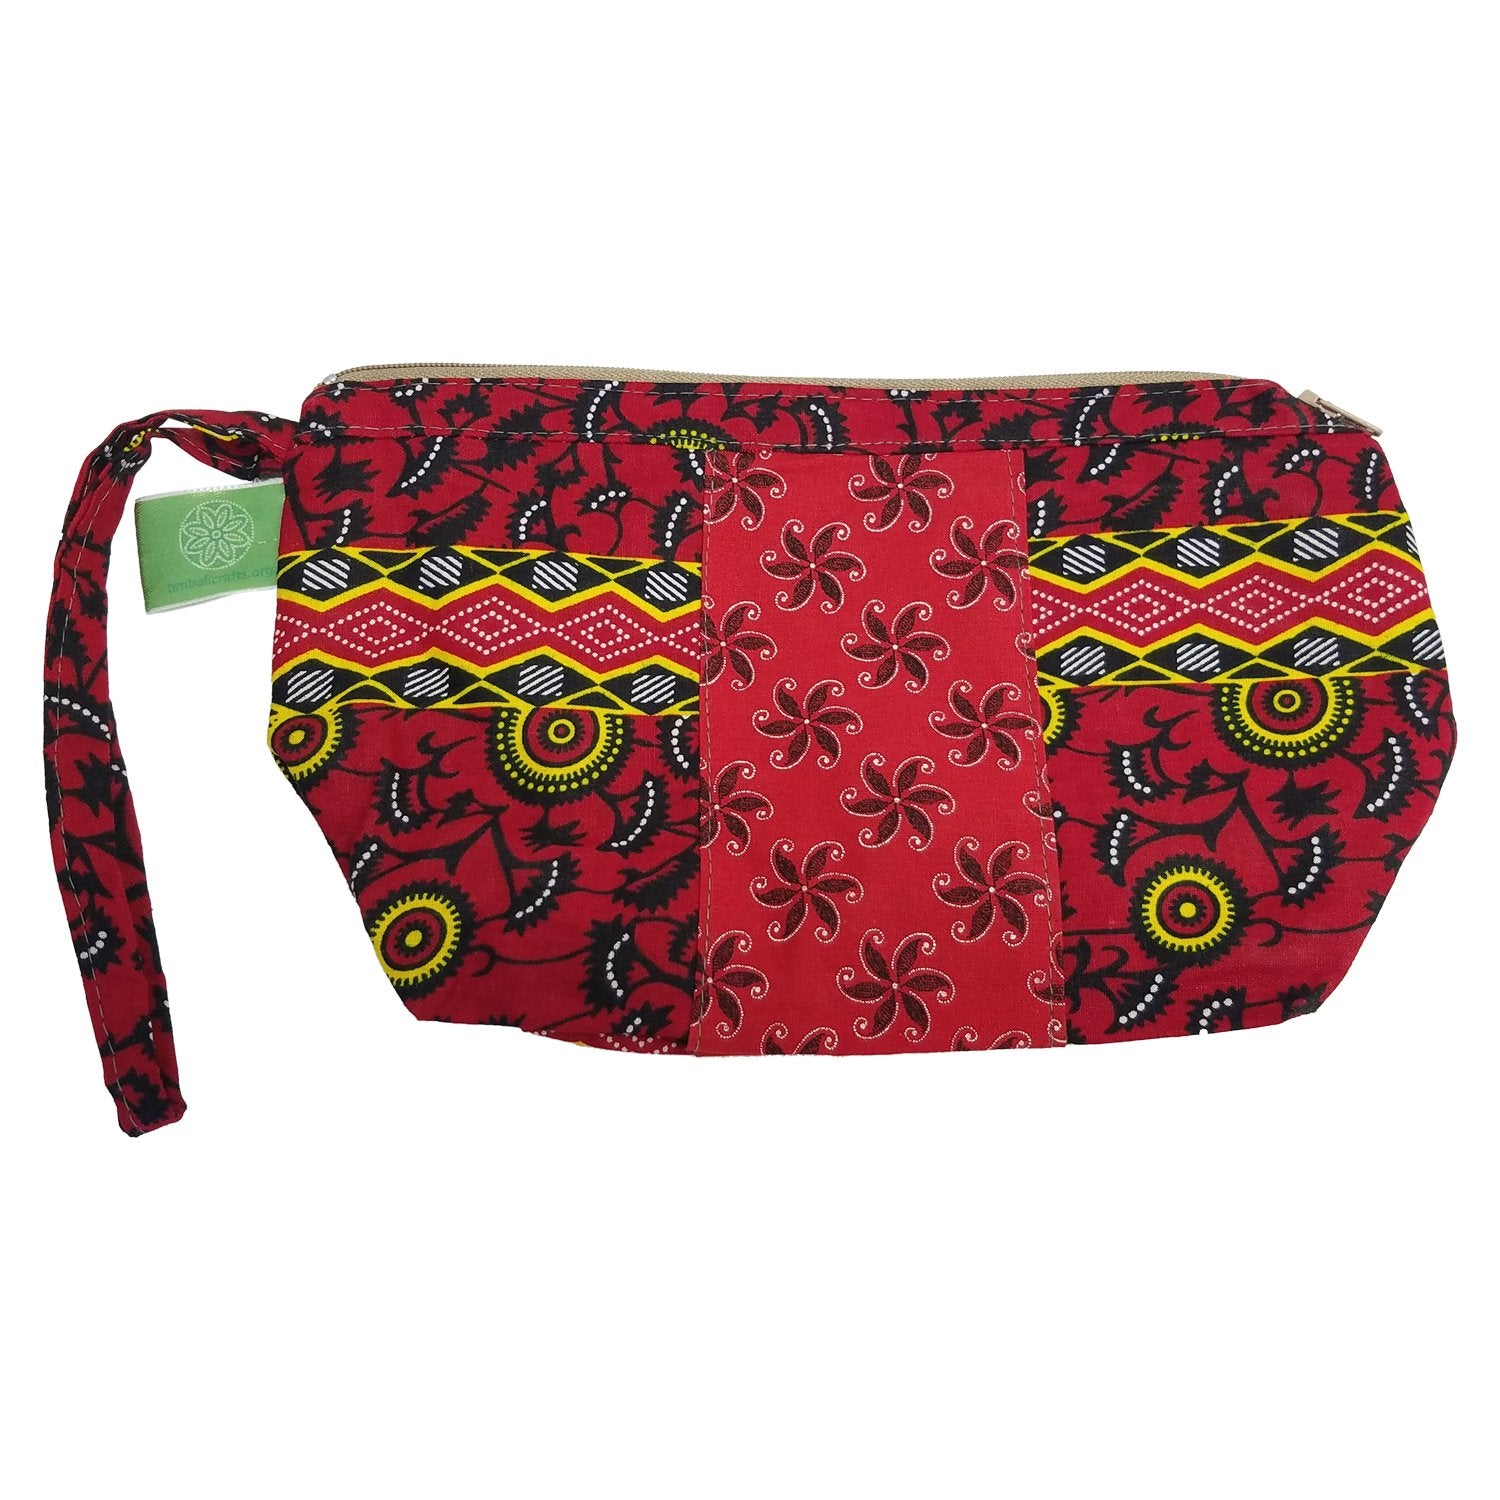 Mbabane: Authentic African Wax Print Fabric Cosmetic/Make-up Bag/Wristlet